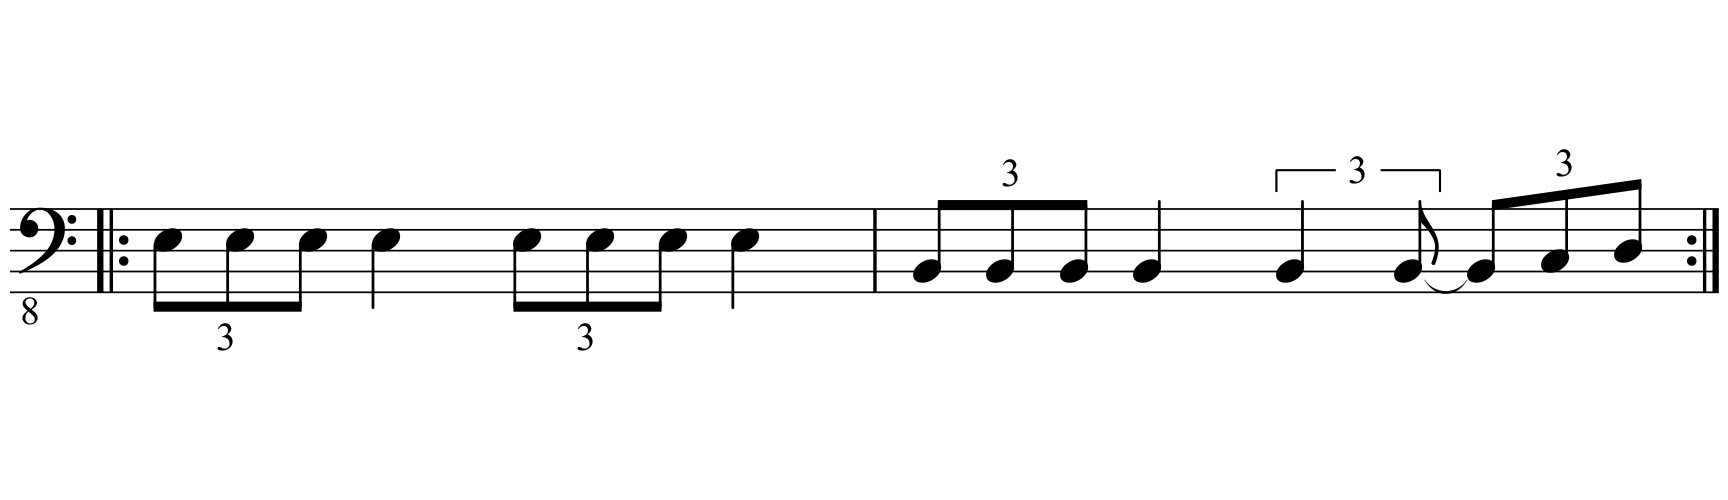 structure-melody-1.png